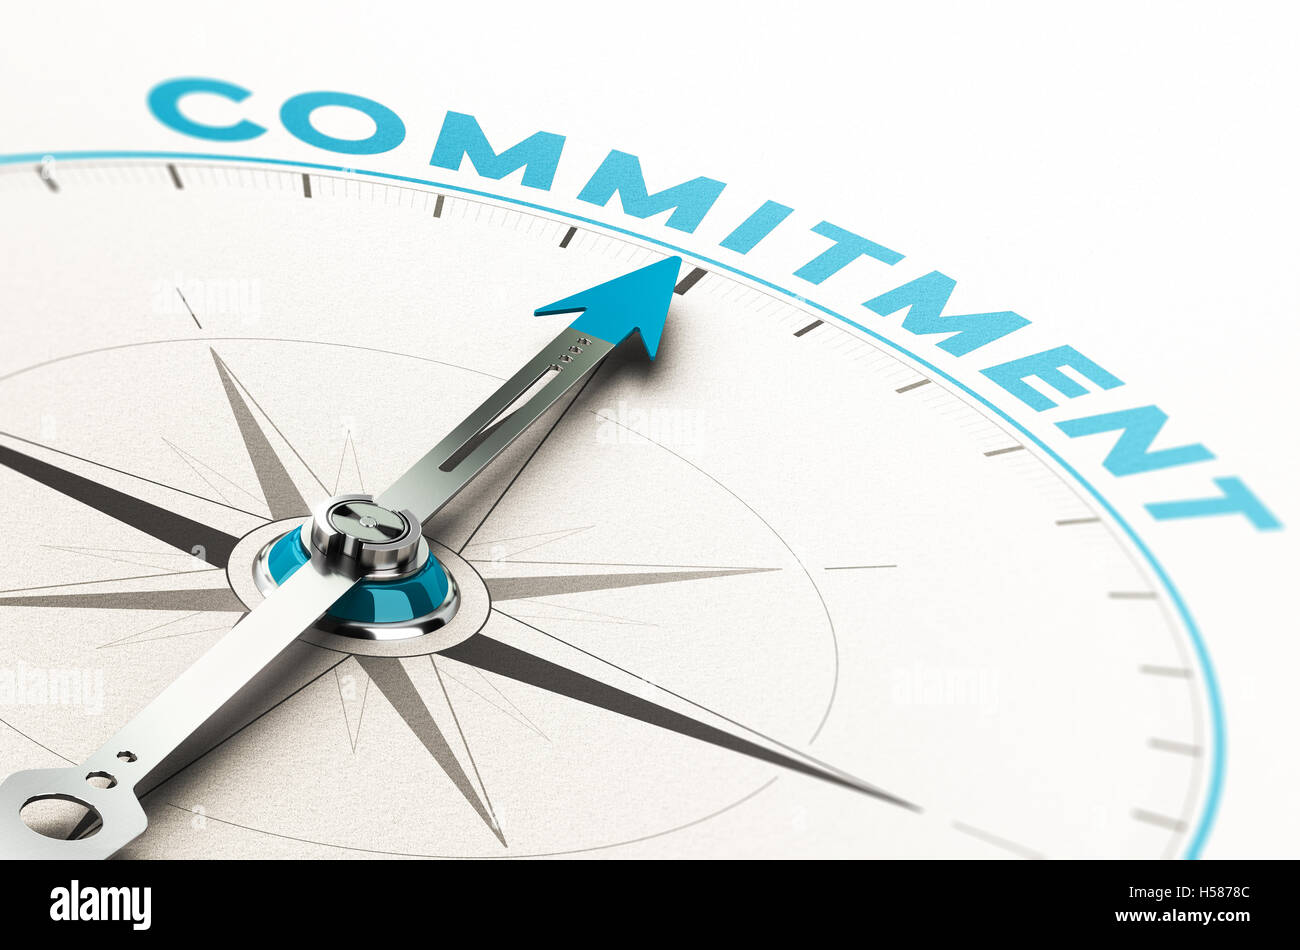 Conceptual compass with needle pointing the word commitment. 3D illustration with cian and beige tones. - Stock Image